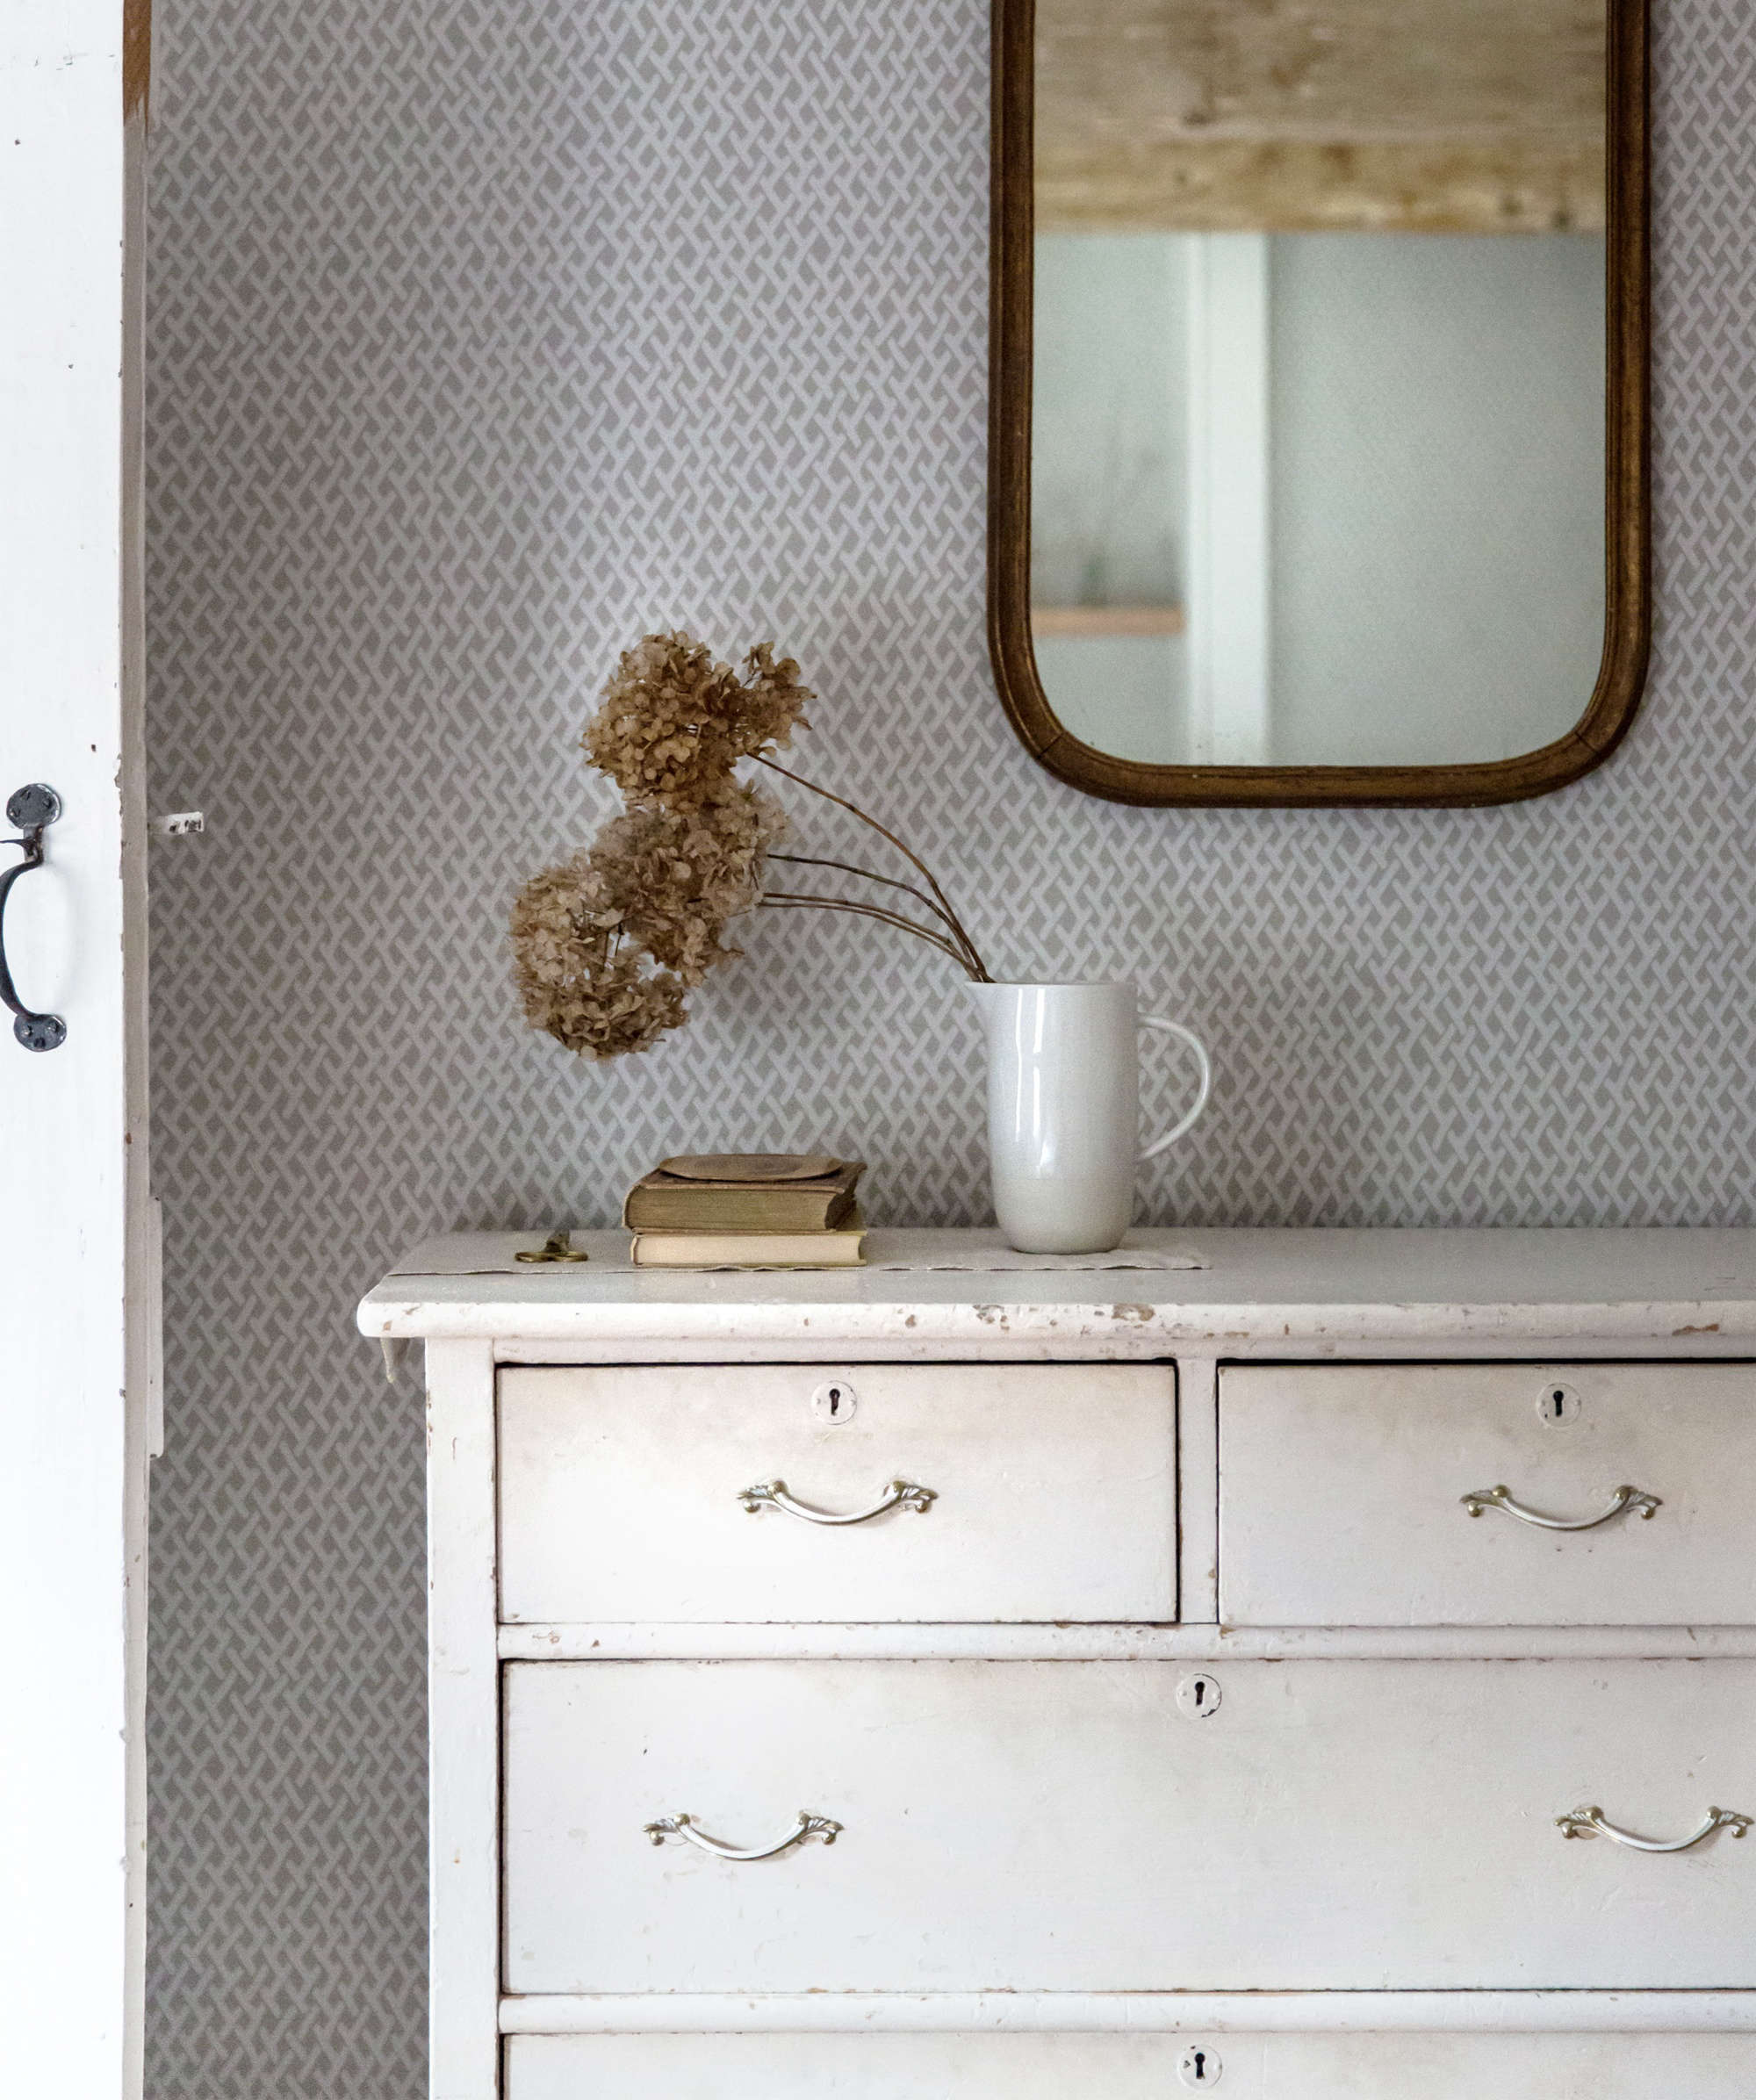 Expert Advice 5 Diy Finishes For Painted Furniture Vintage Edition Remodelista